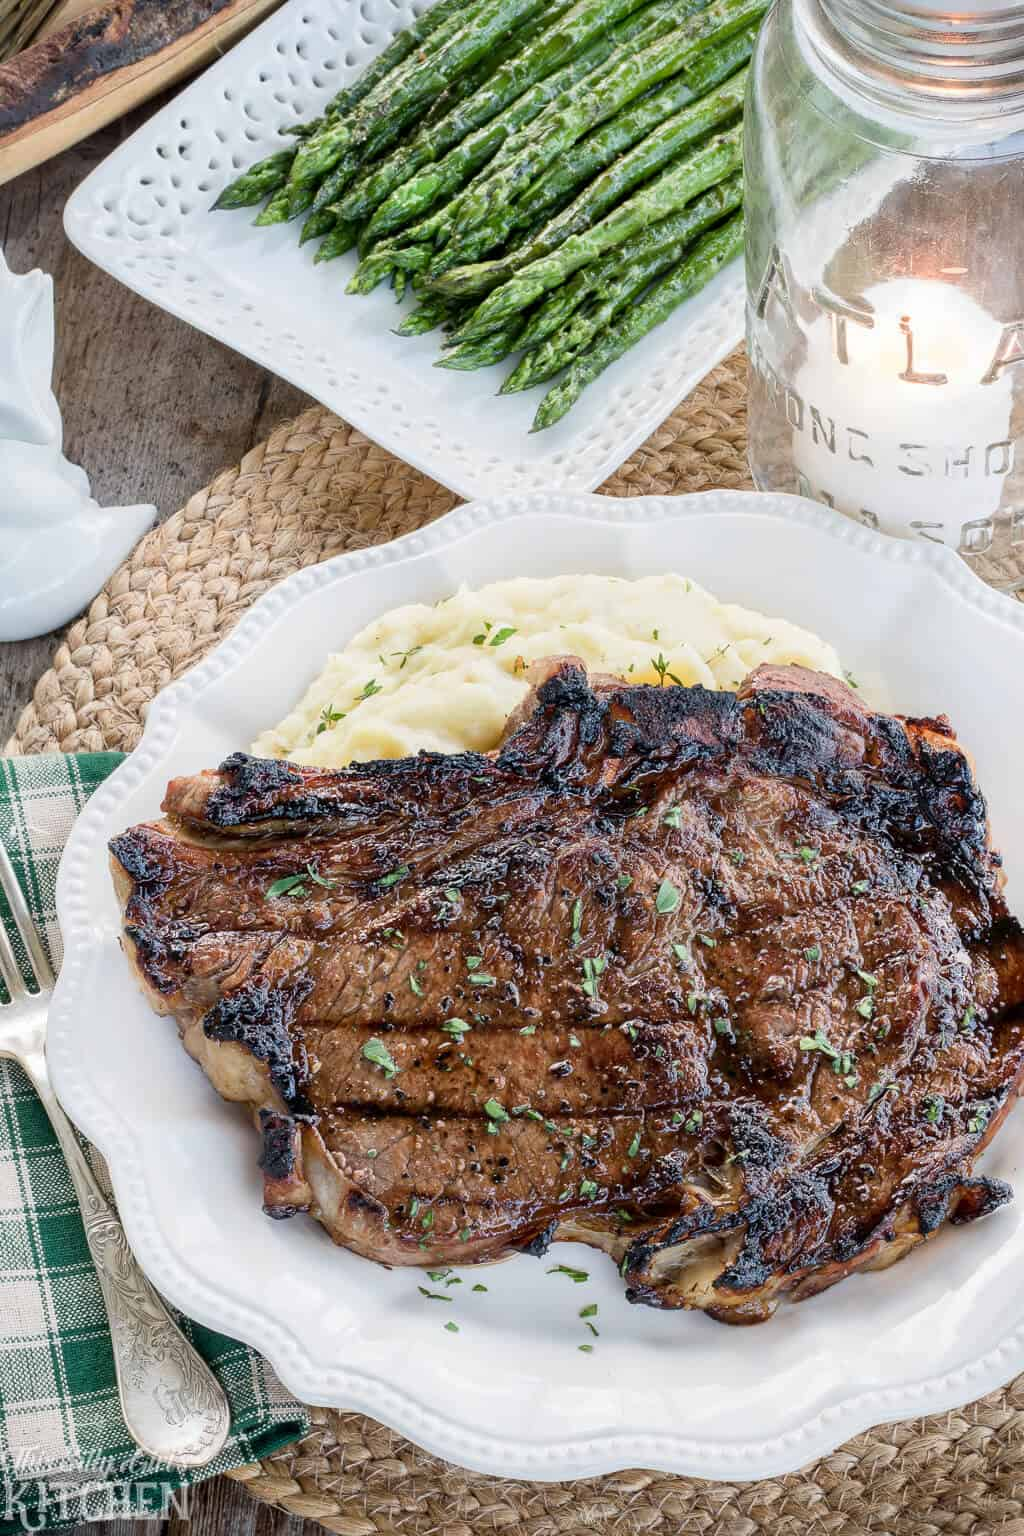 Best Steak Marinade for Grilled Rib Eye Steaks, grilled to perfection, you will make this recipe again and again! #Recipe from ThisSillyGirlsKitchen.com #ribeyesteak #steakmarinade #grilling #beststeakmarinade